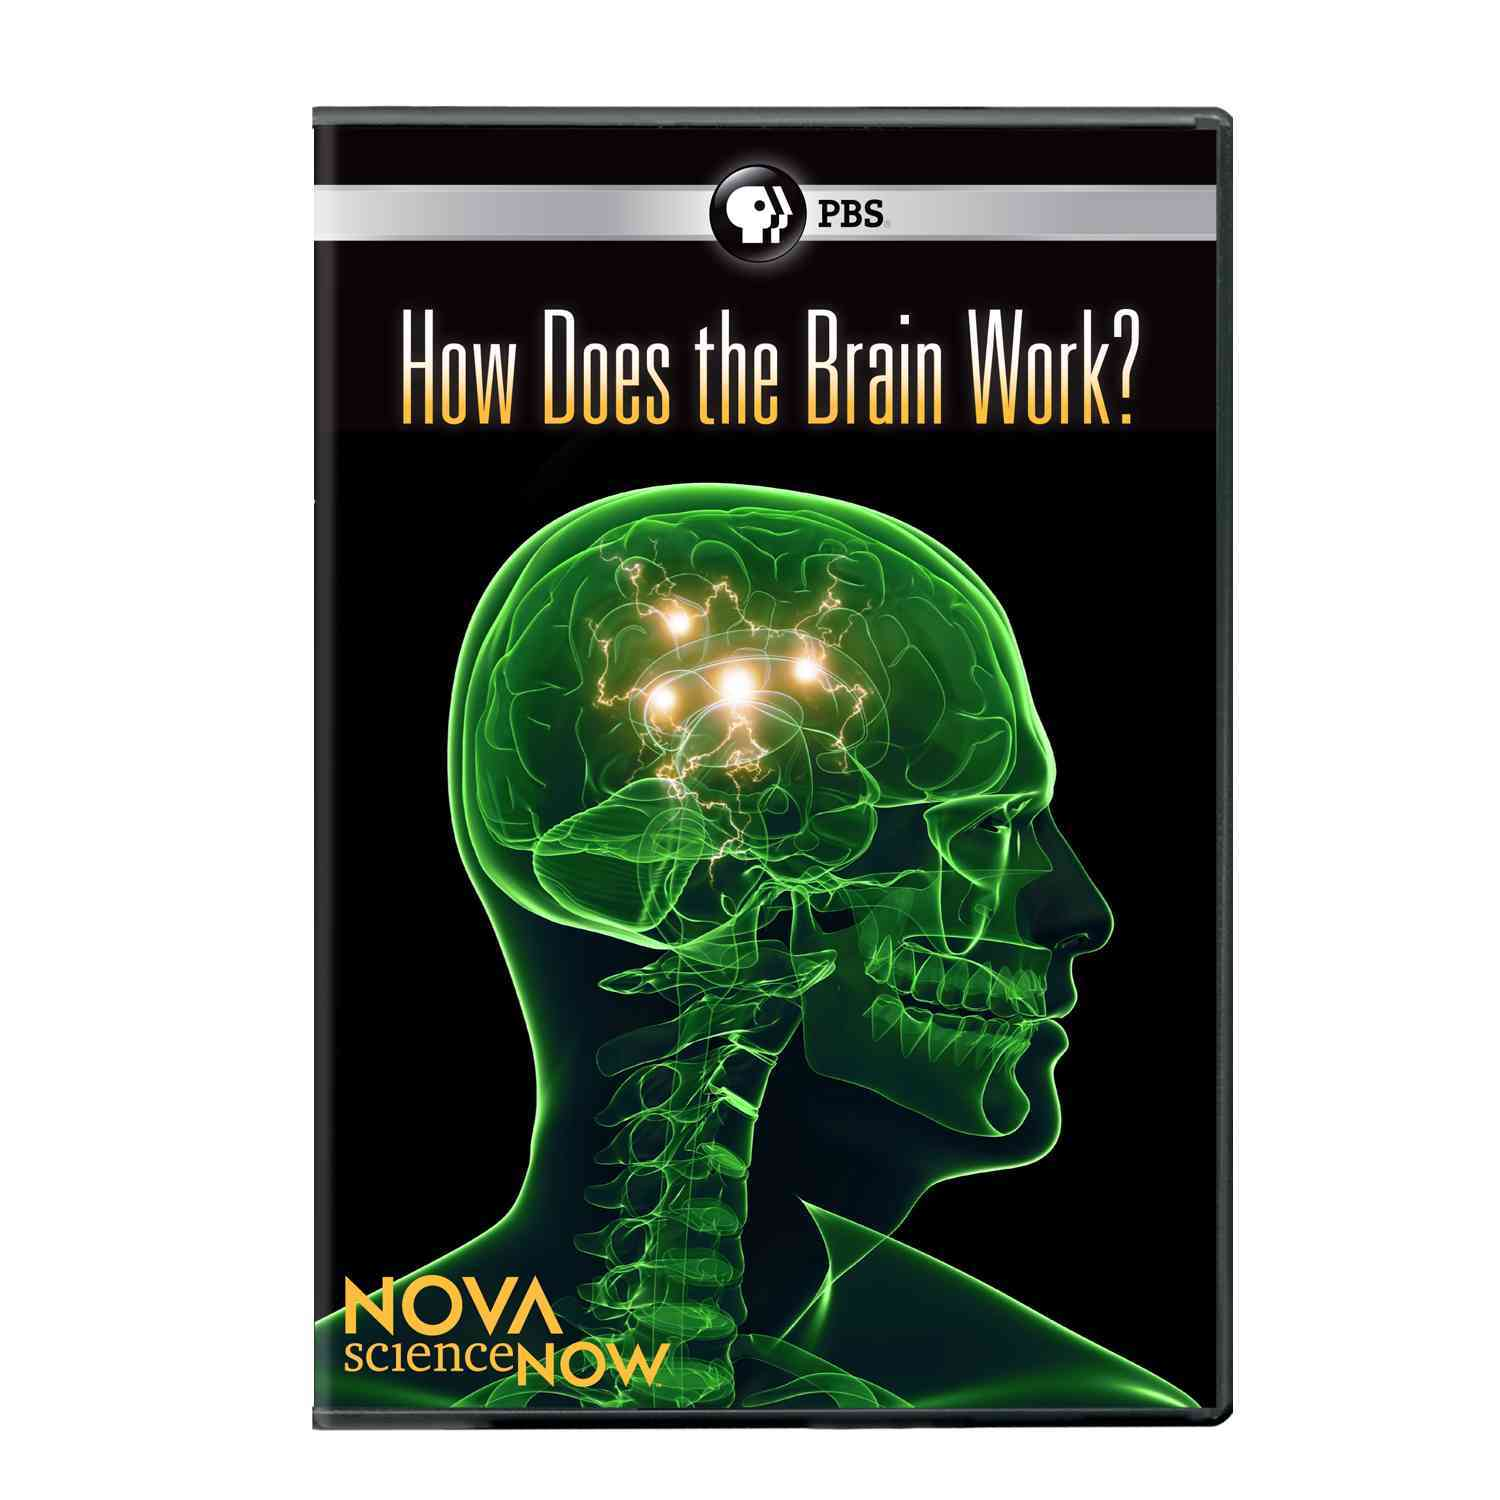 Nova: ScienceNOW: How Does The Brain Work? (DVD)